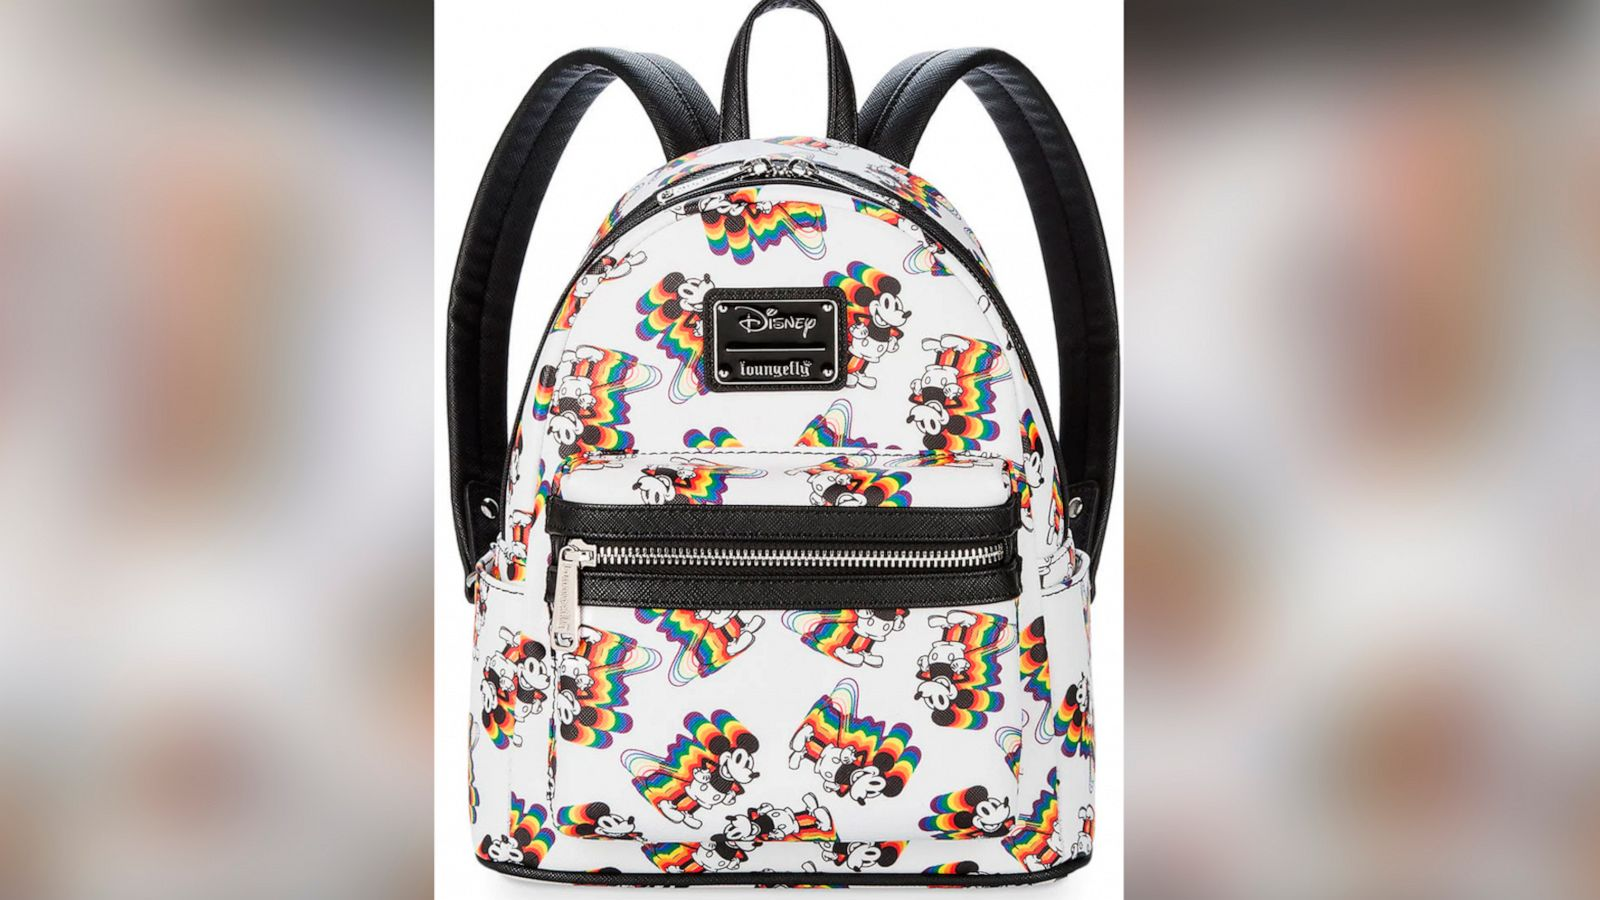 27c253a6b82 Rock the rainbow with these Mickey Mouse backpacks